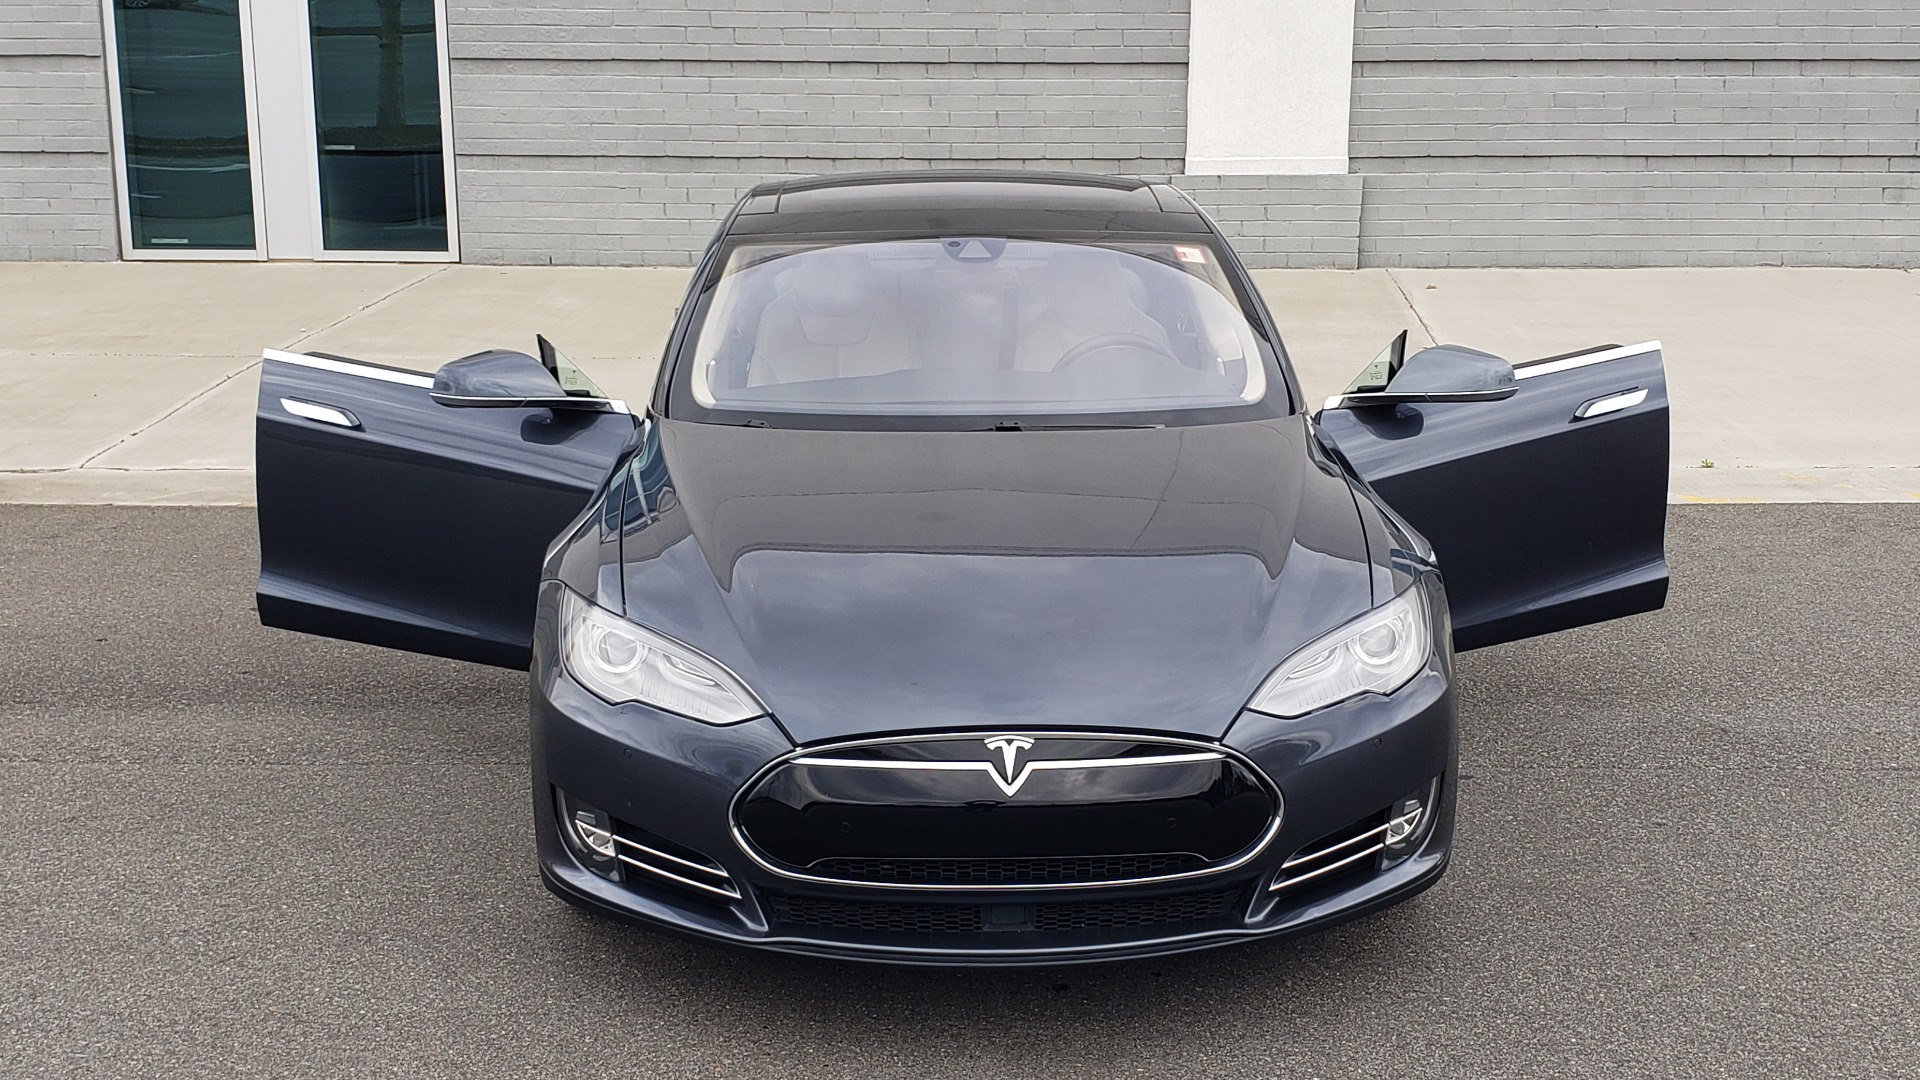 Used 2014 Tesla MODEL S 60 kWh BATTERY / TECH / NAV / SUBZERO / SUNROOF / REARVIEW for sale Sold at Formula Imports in Charlotte NC 28227 19